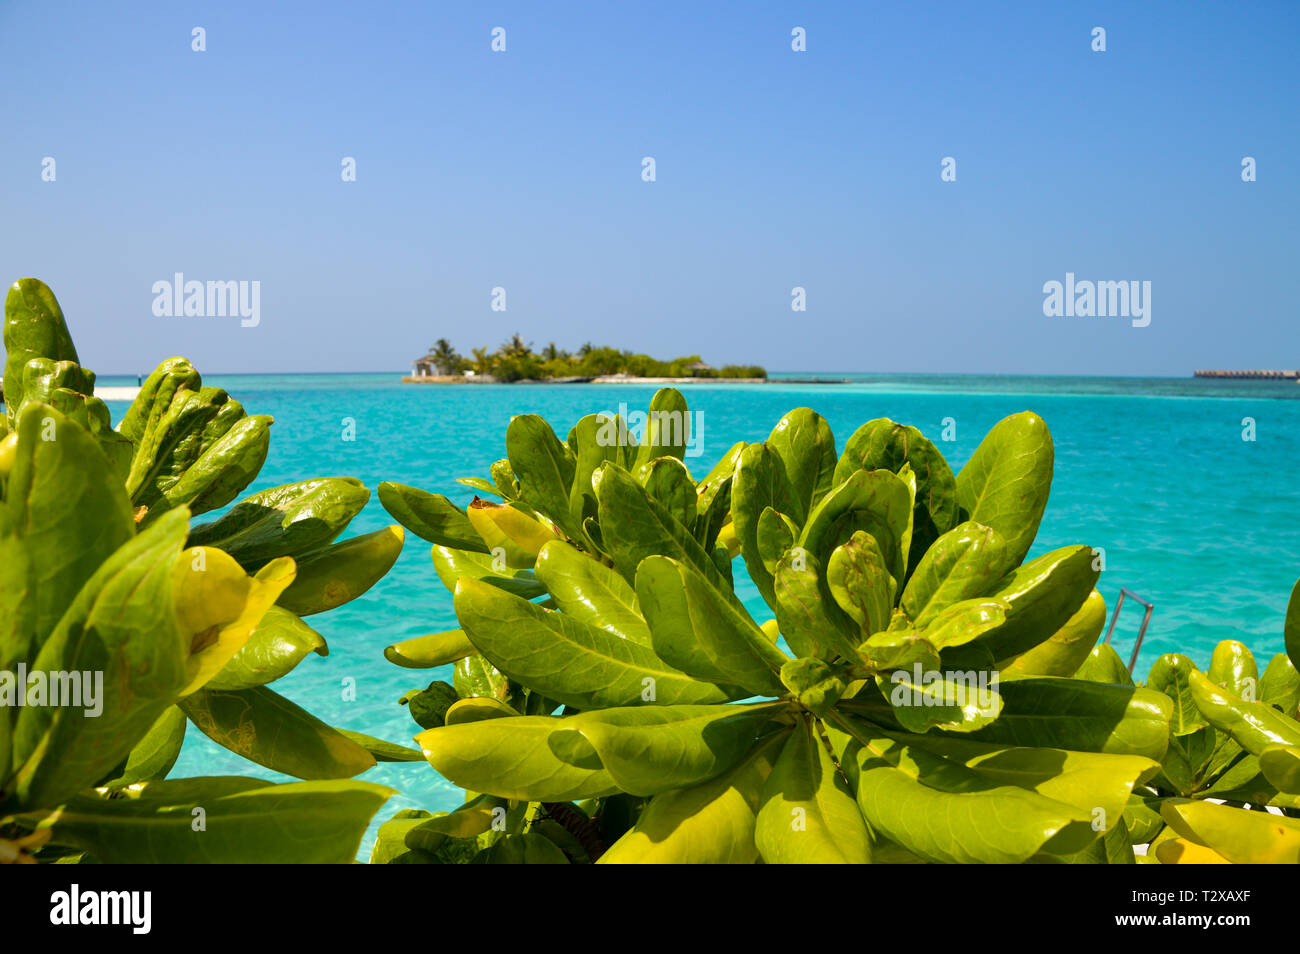 Beautiful Tropical Maldives Resort Hotel And Island With